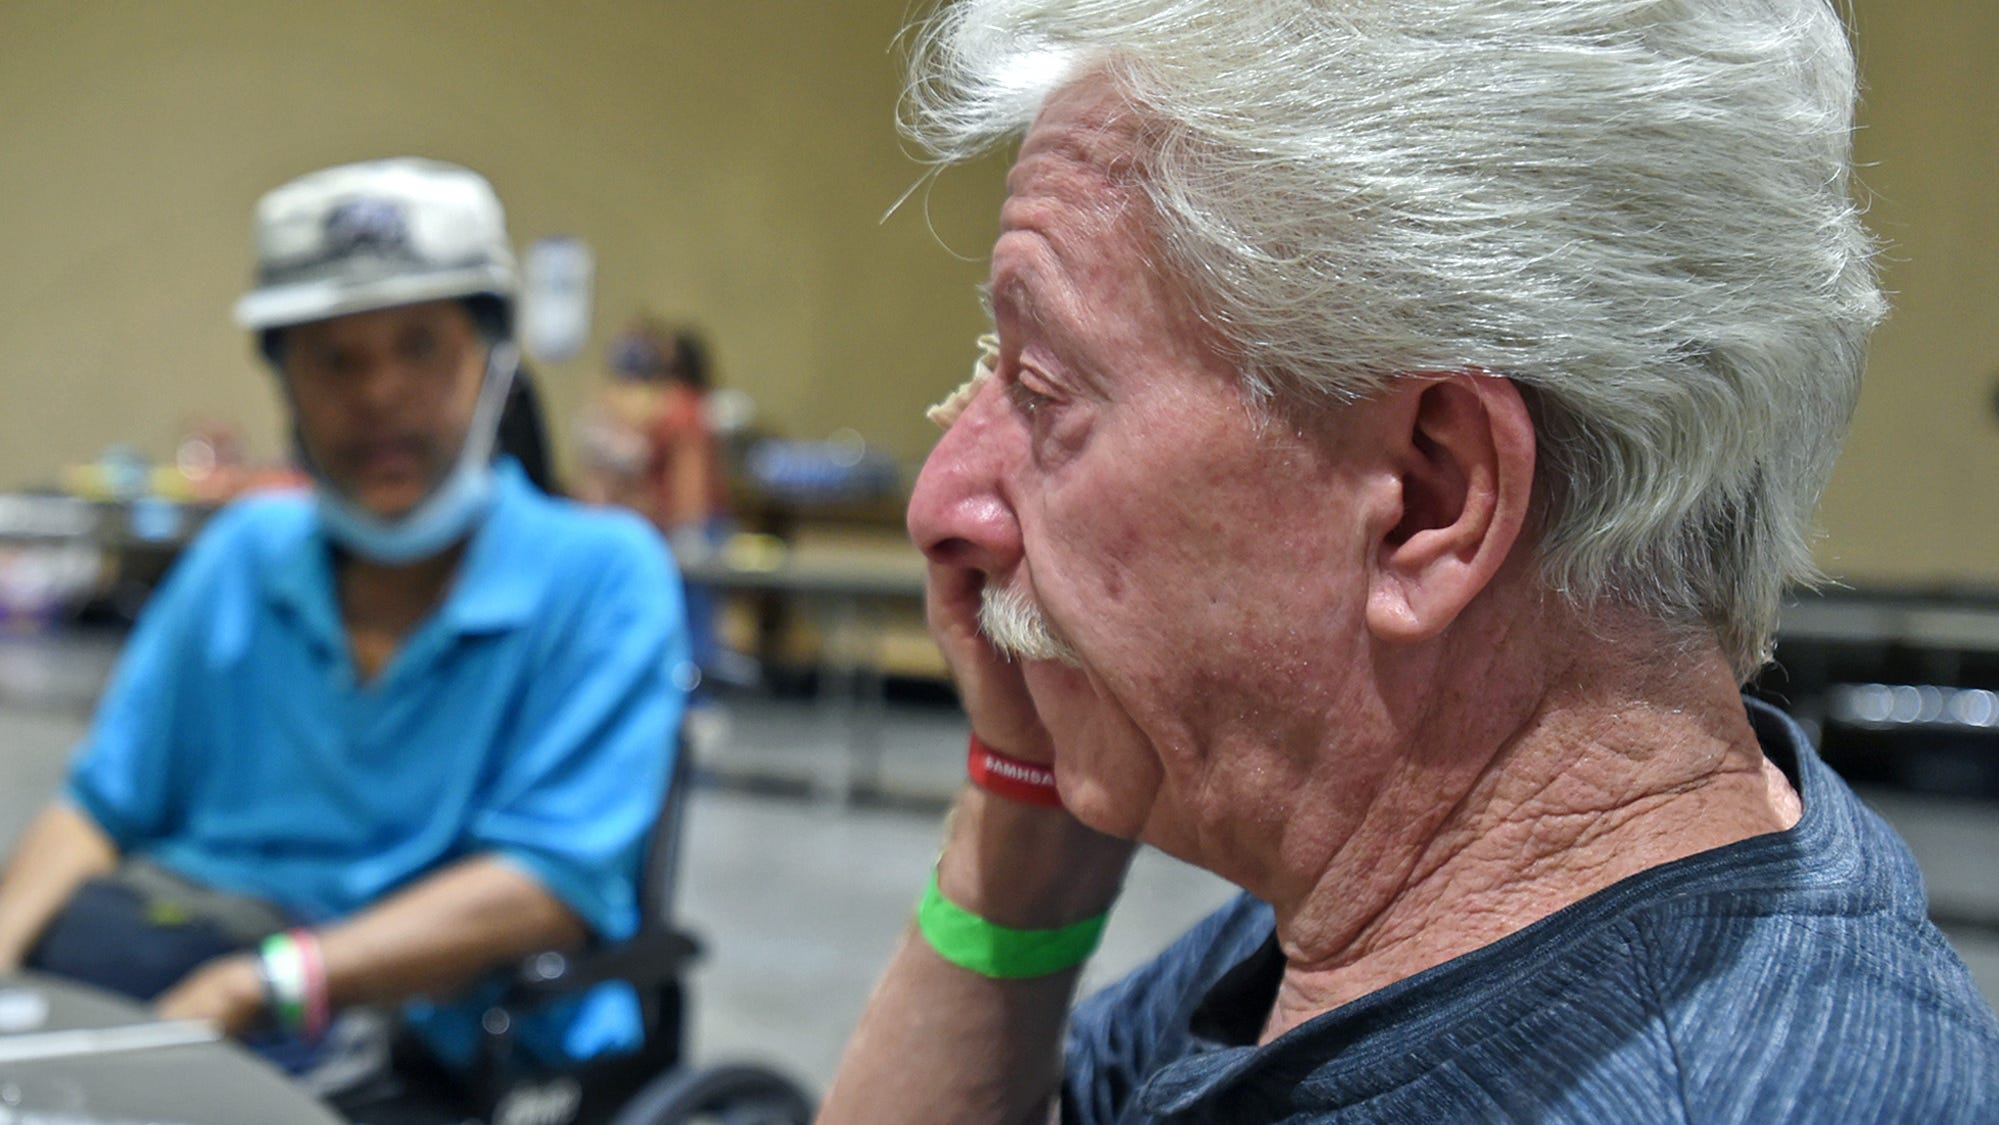 Having lunch at the evacuation center at the Reno-Sparks Convention Center, Timothy Pritchard wipes a tear away as he talks about what he left behind at his South Lake Tahoe home. Next to him is newfound friend Paul Brooks who had to call 911 to help him get out because he's in a wheelchair.